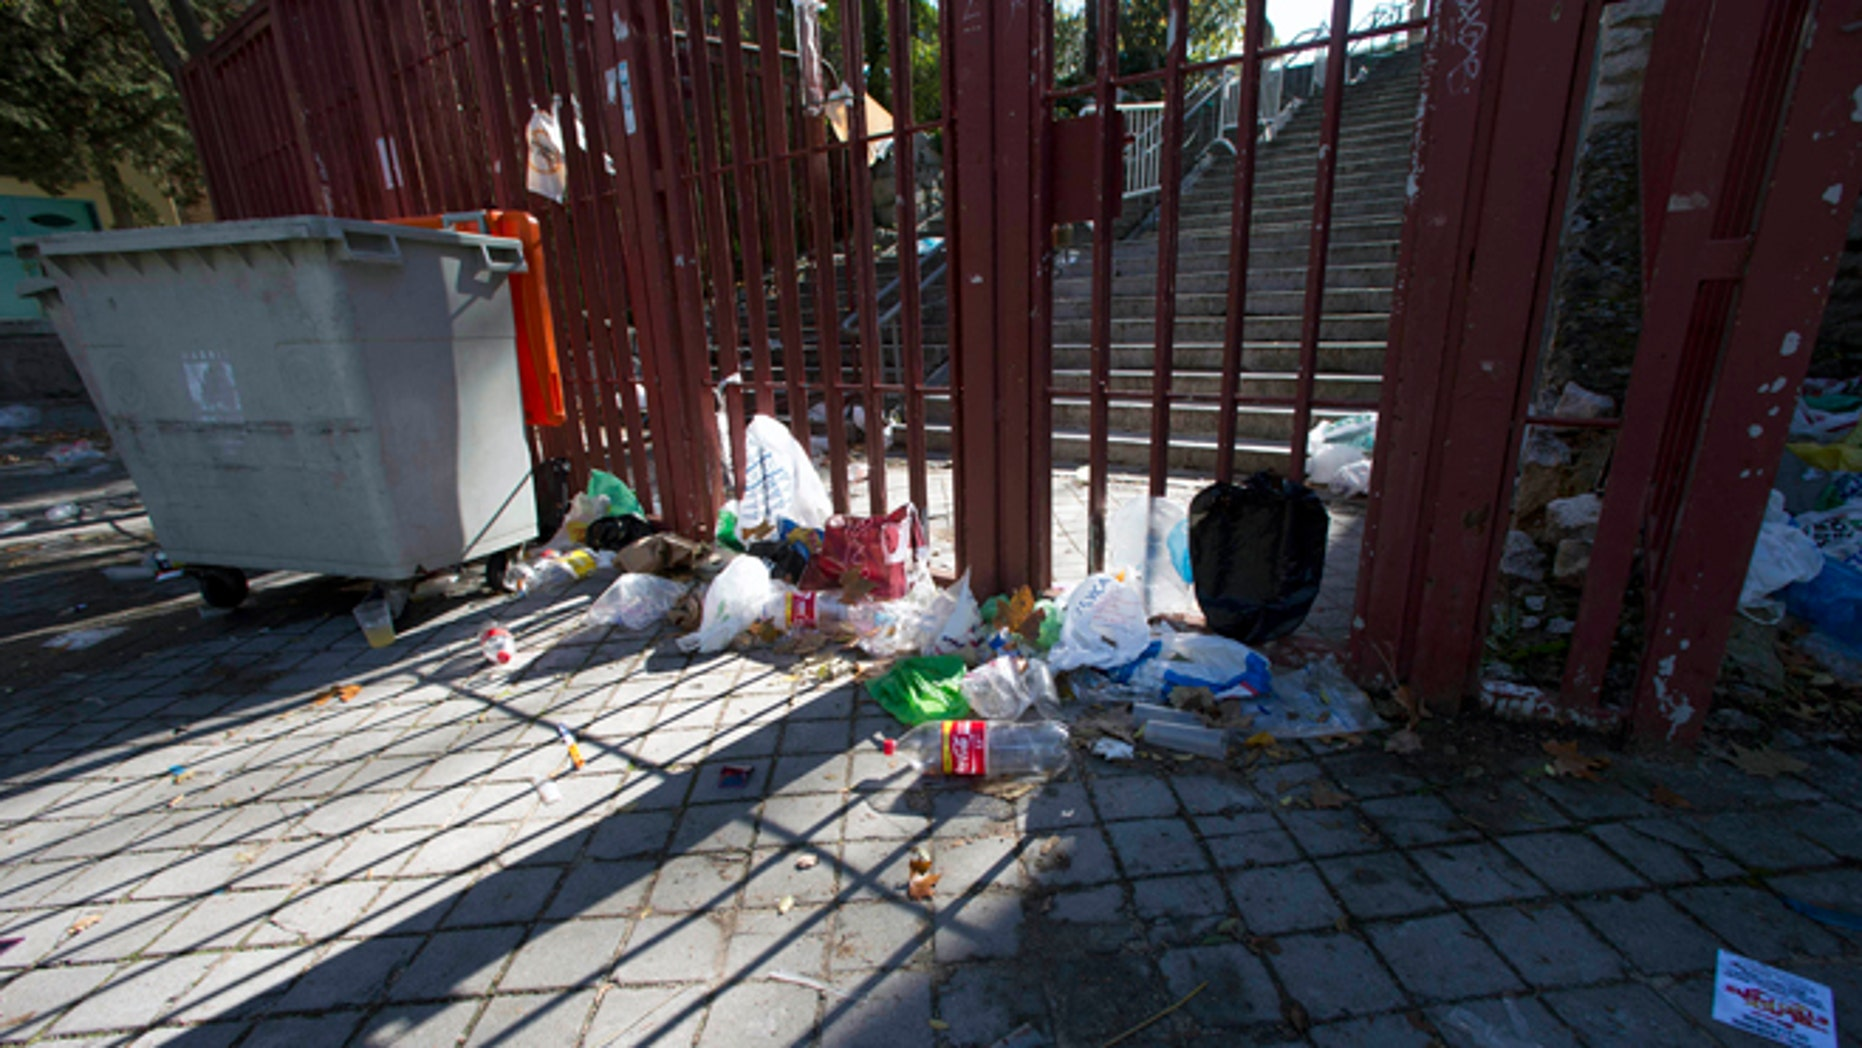 Nov. 1, 2012: Empty bottles and other debris lie outside the closed gates of the Madrid Arena venue in Madrid.